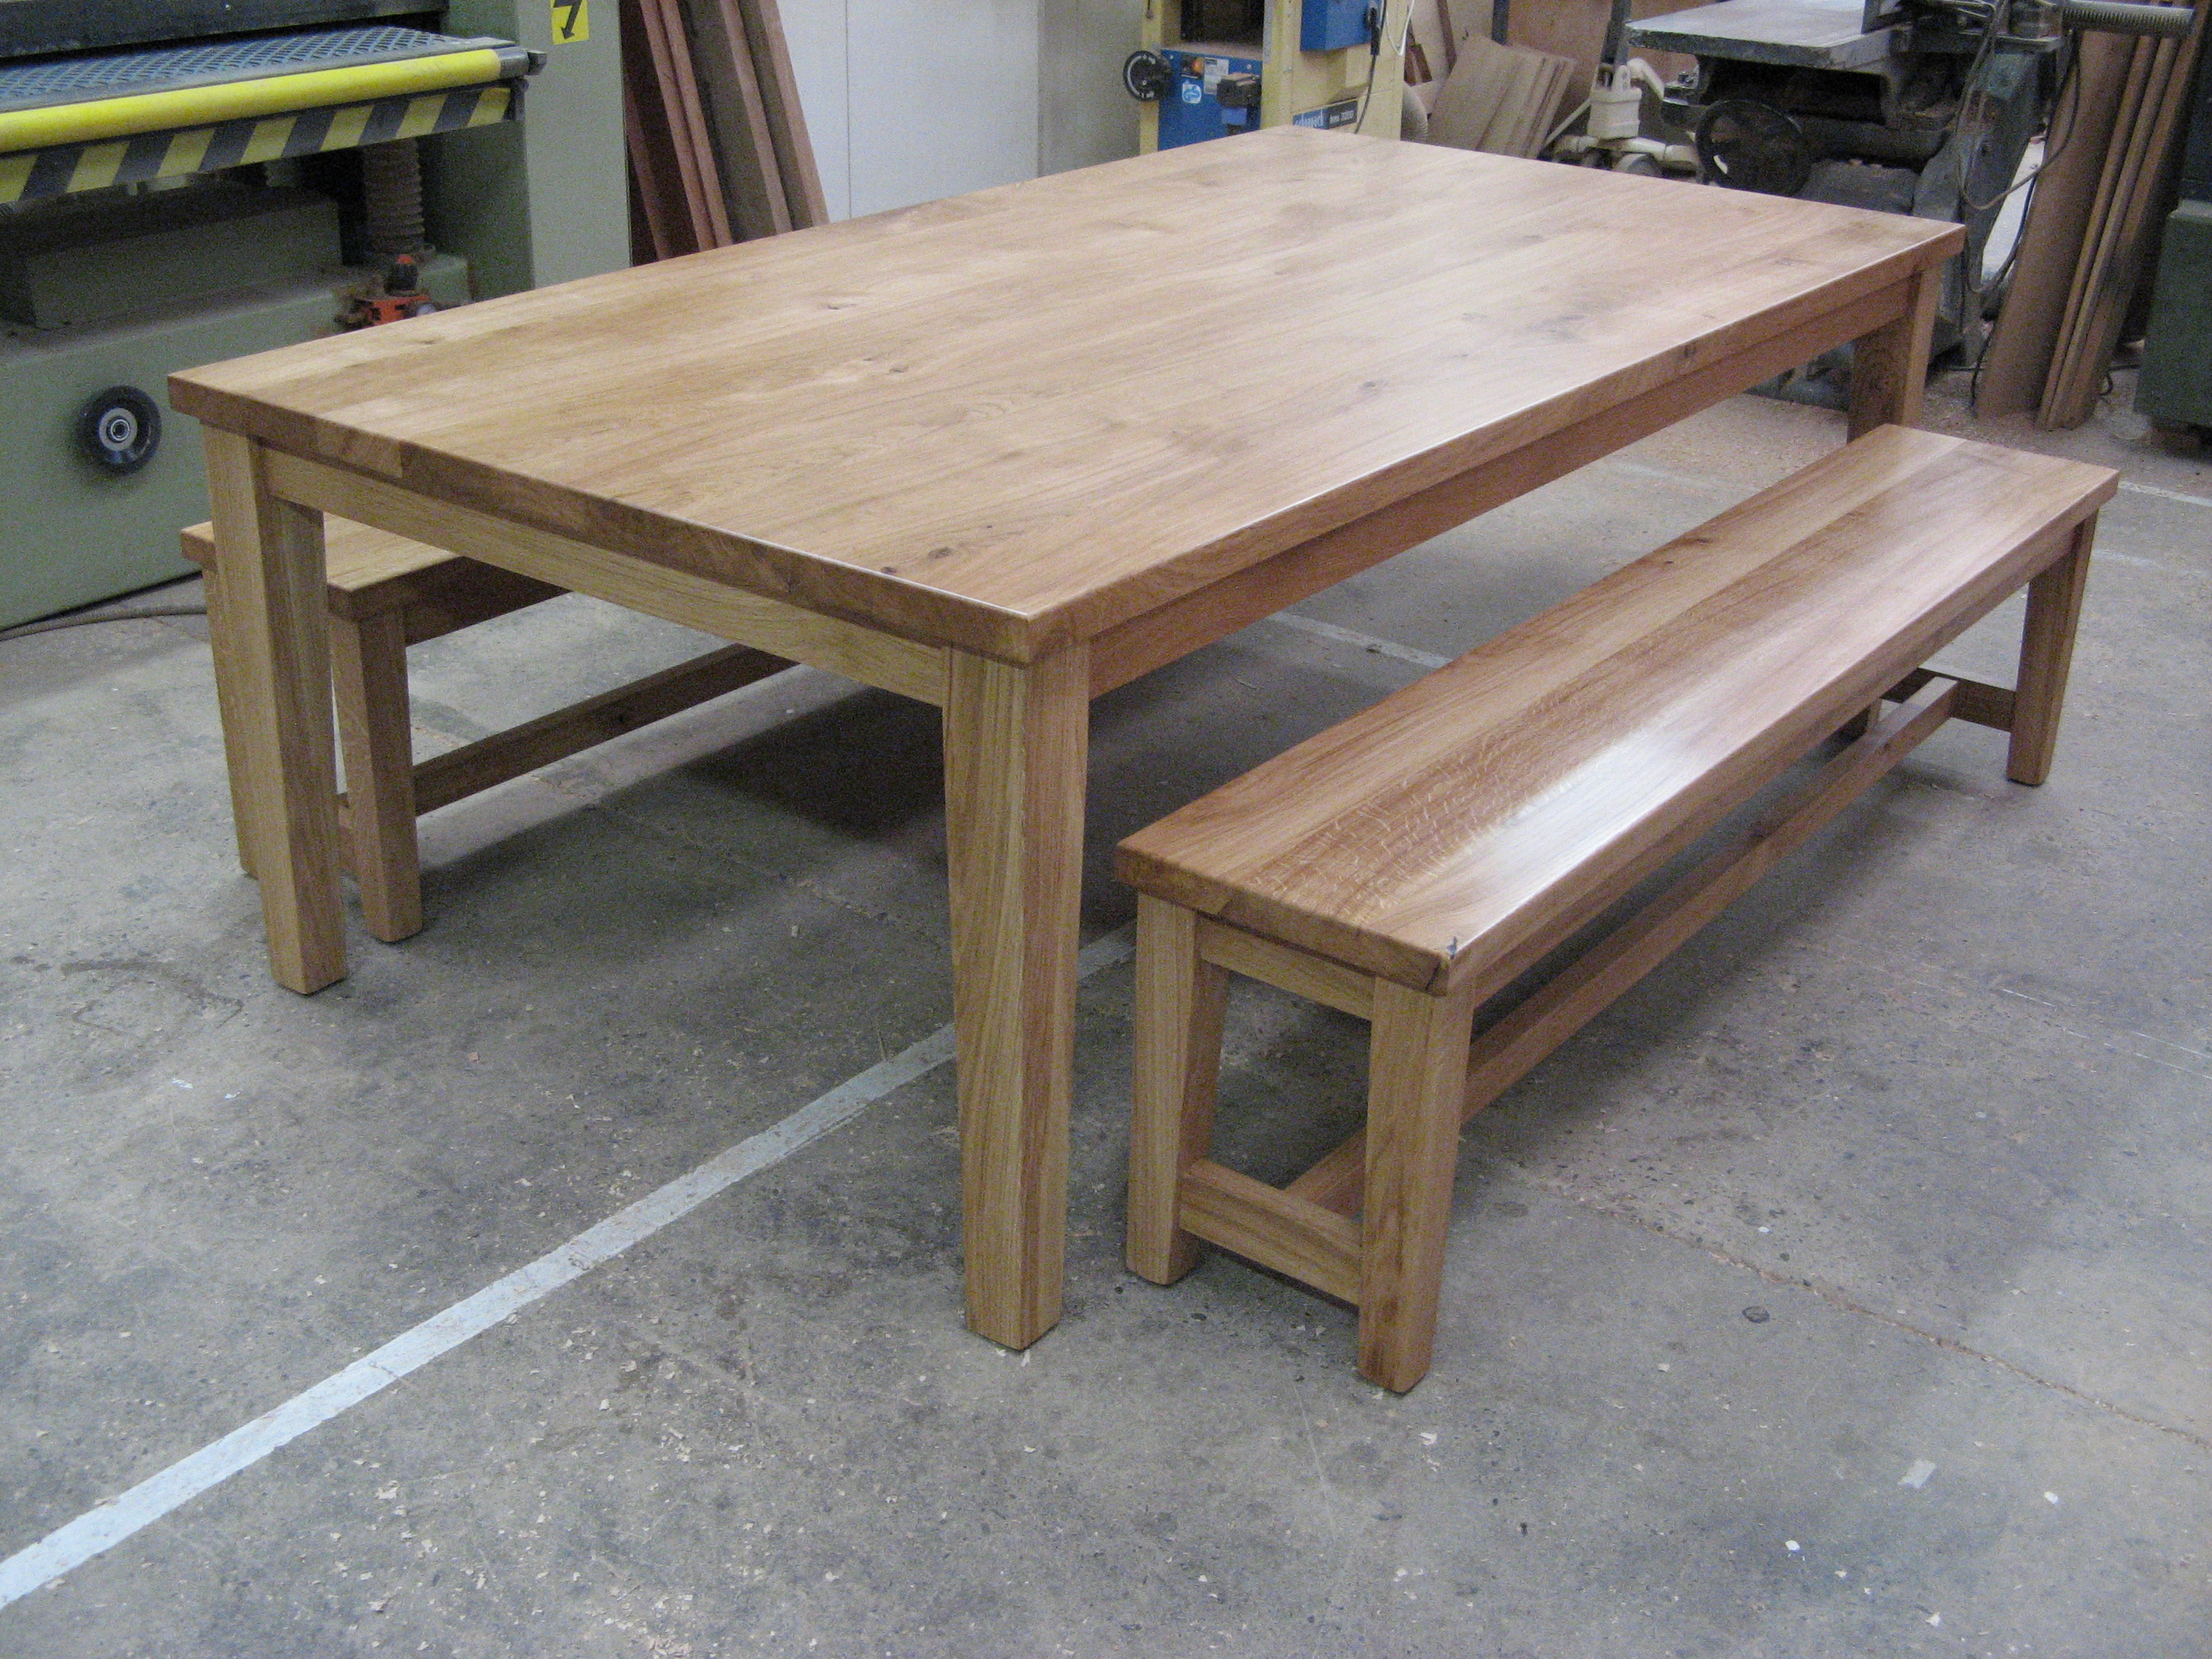 New York Table Amp Bench Seats Gavin Cox Furniture